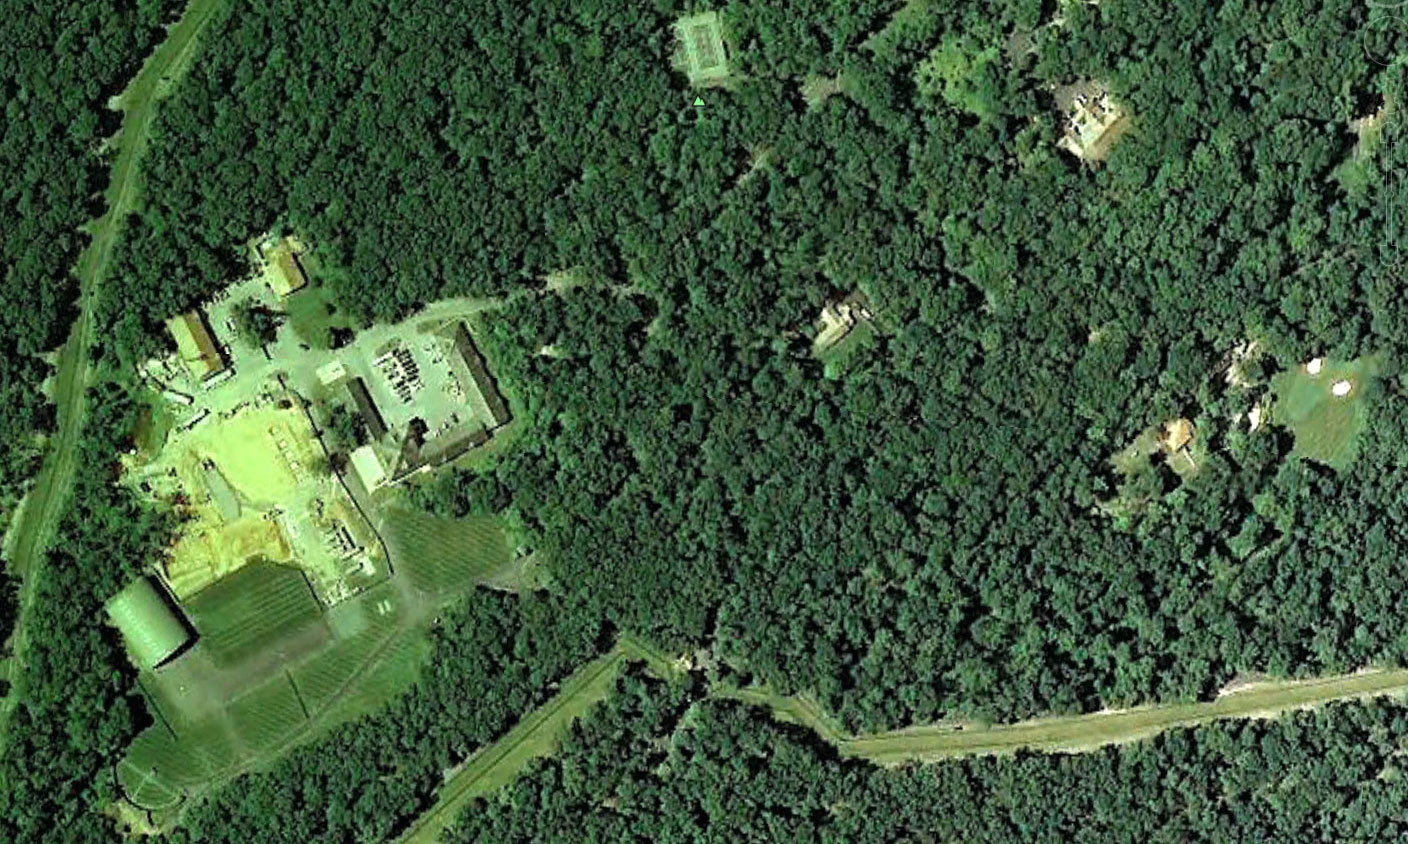 About Camp David Camp David On Google Maps And Google Earth - Google maps aerial view